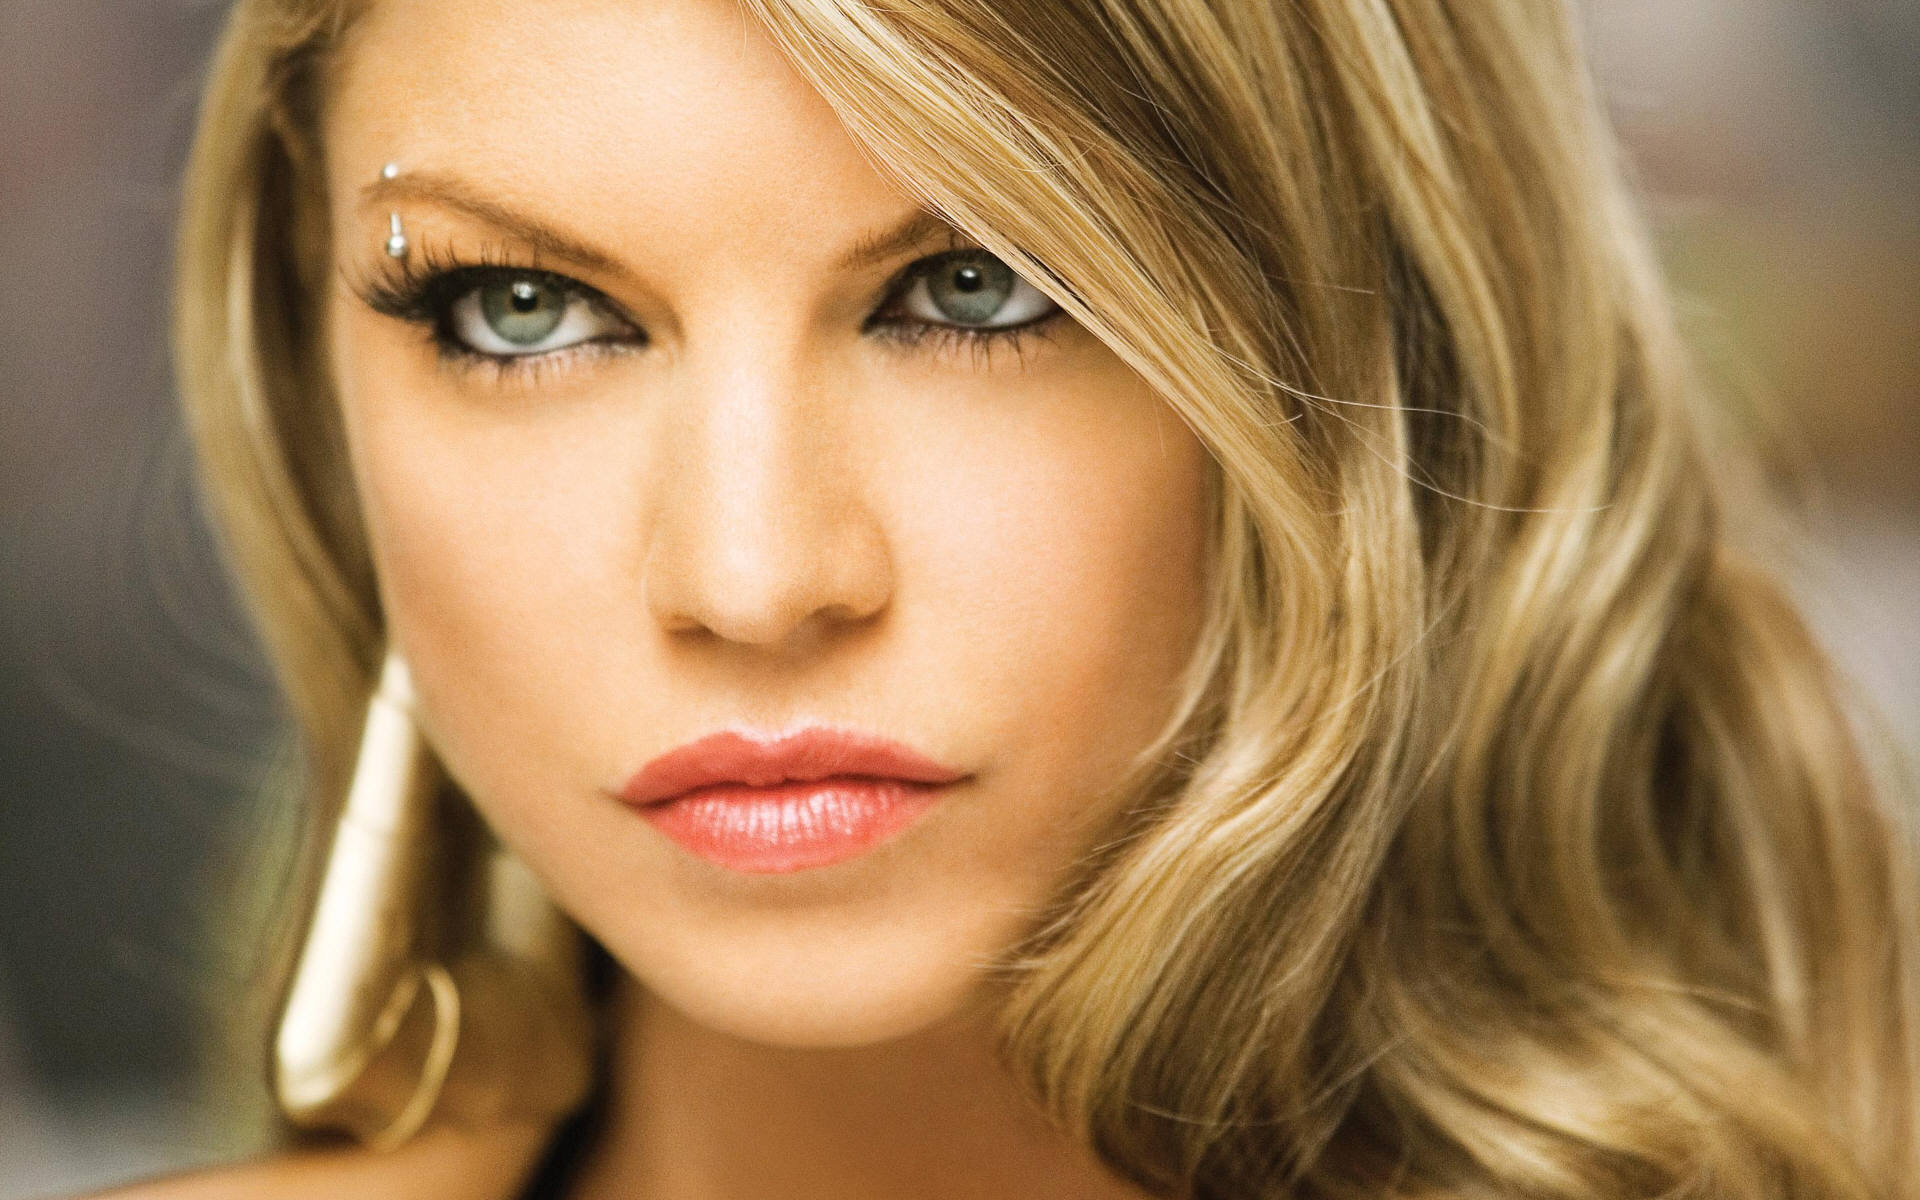 mz . sassi - Fergie Photo (6747795) - Fanpop - Page 5